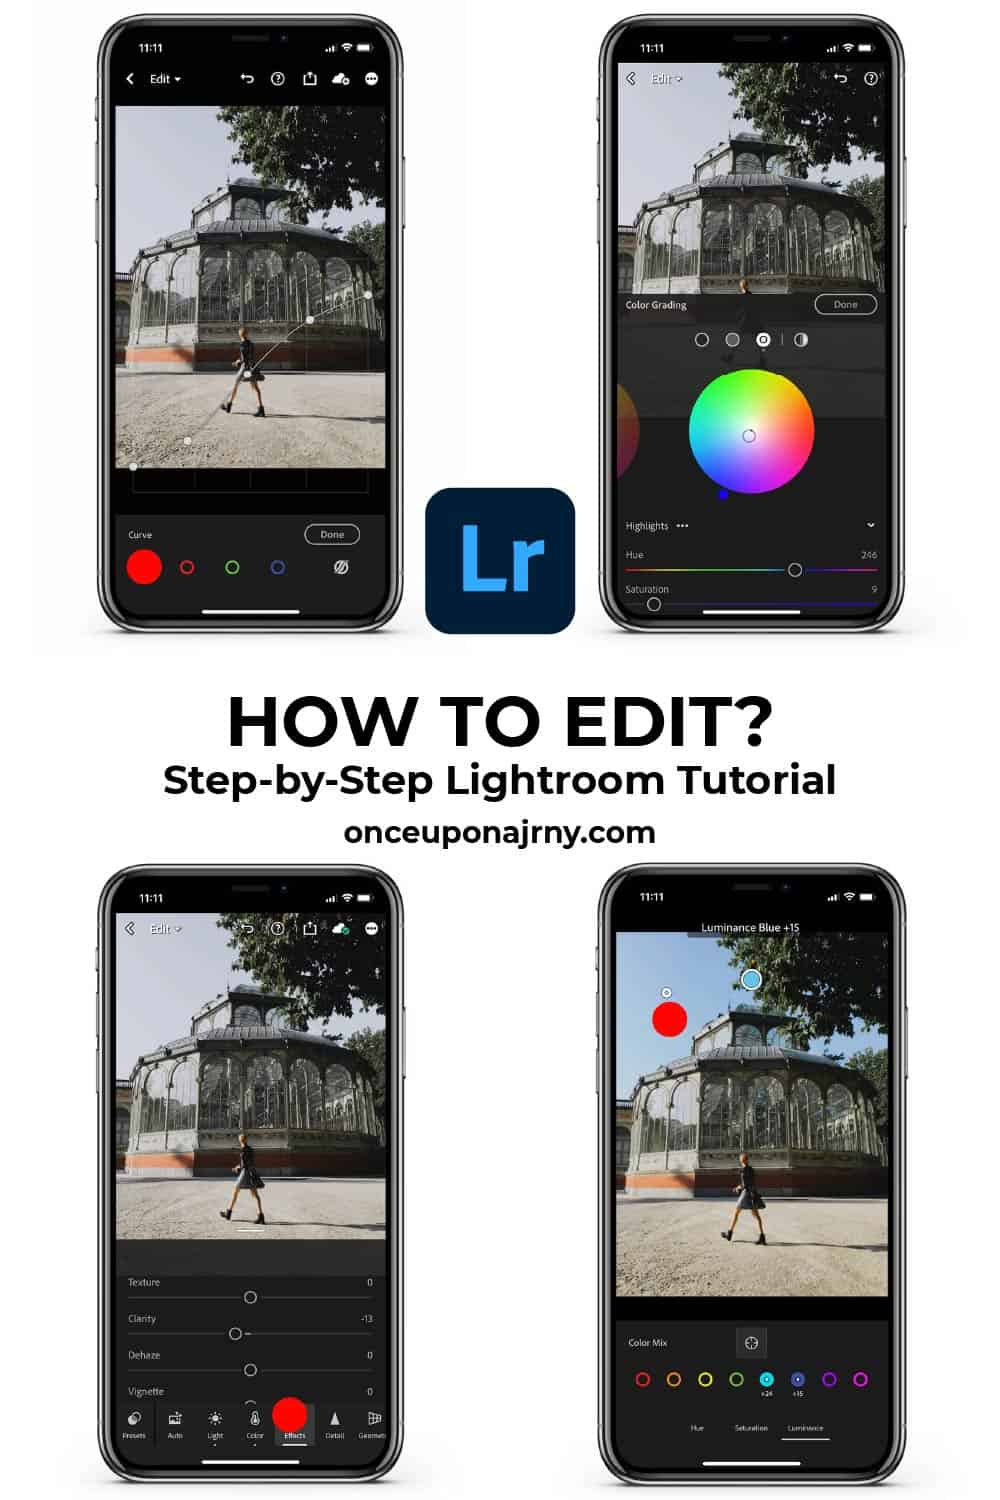 How to Edit Lightroom Tutorial